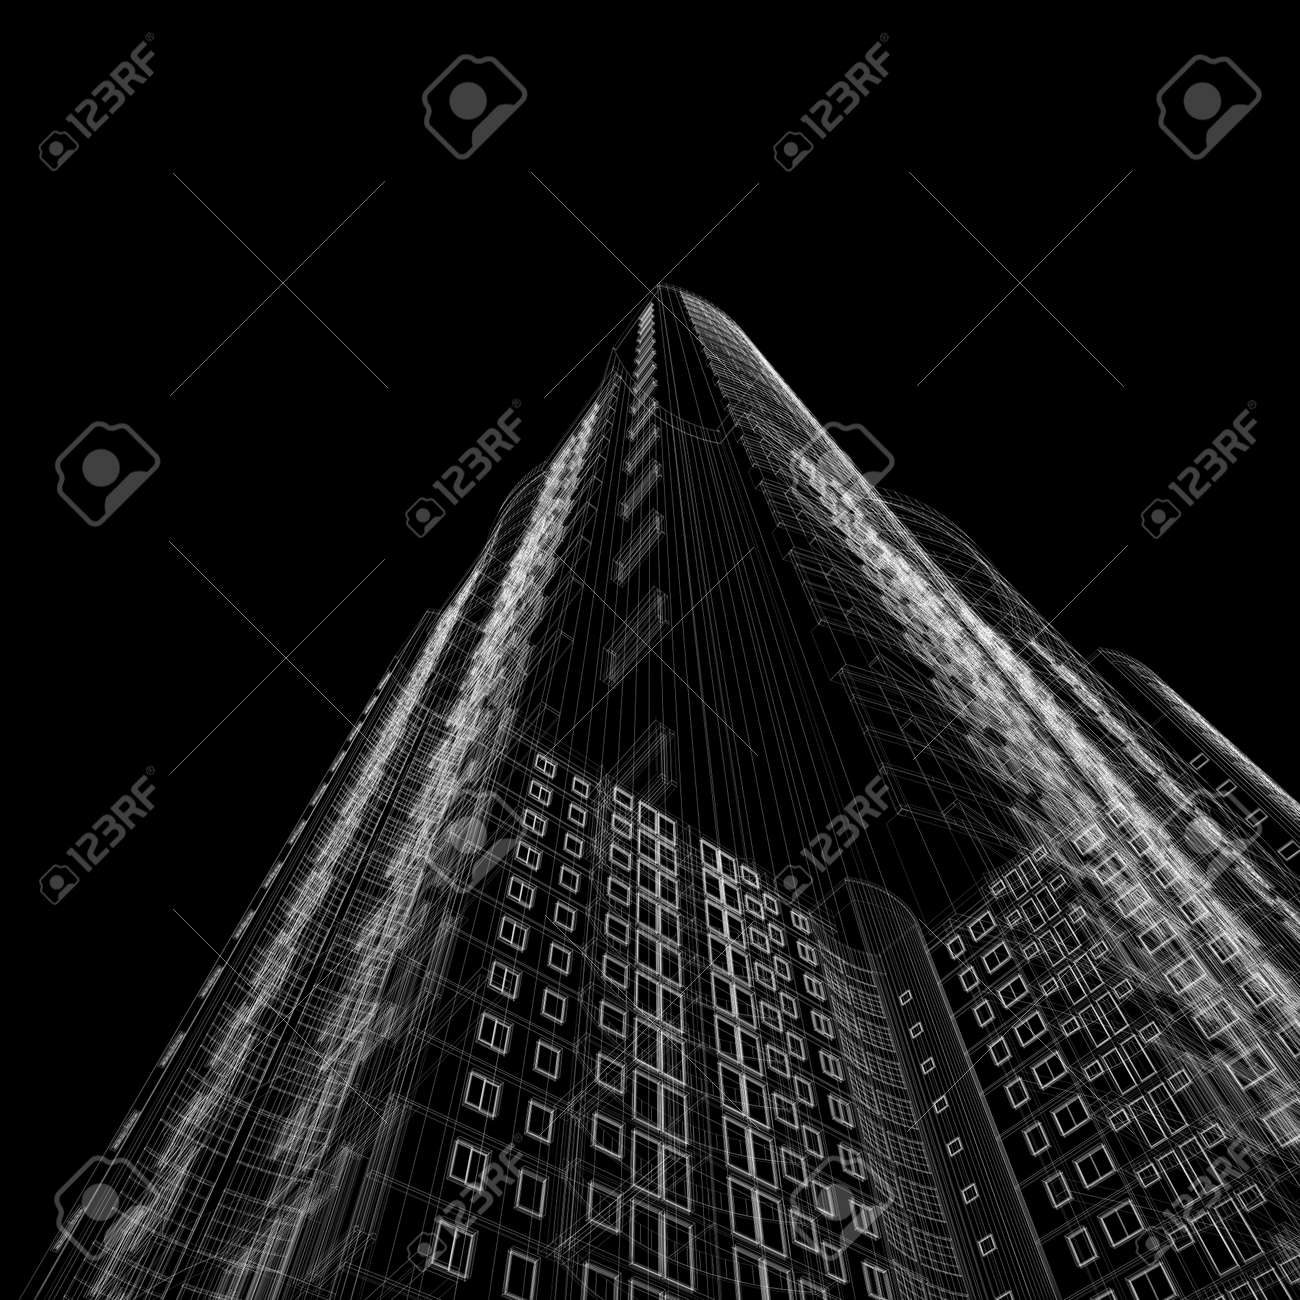 Architecture Blueprint Of Skyscraper On Black Background Stock